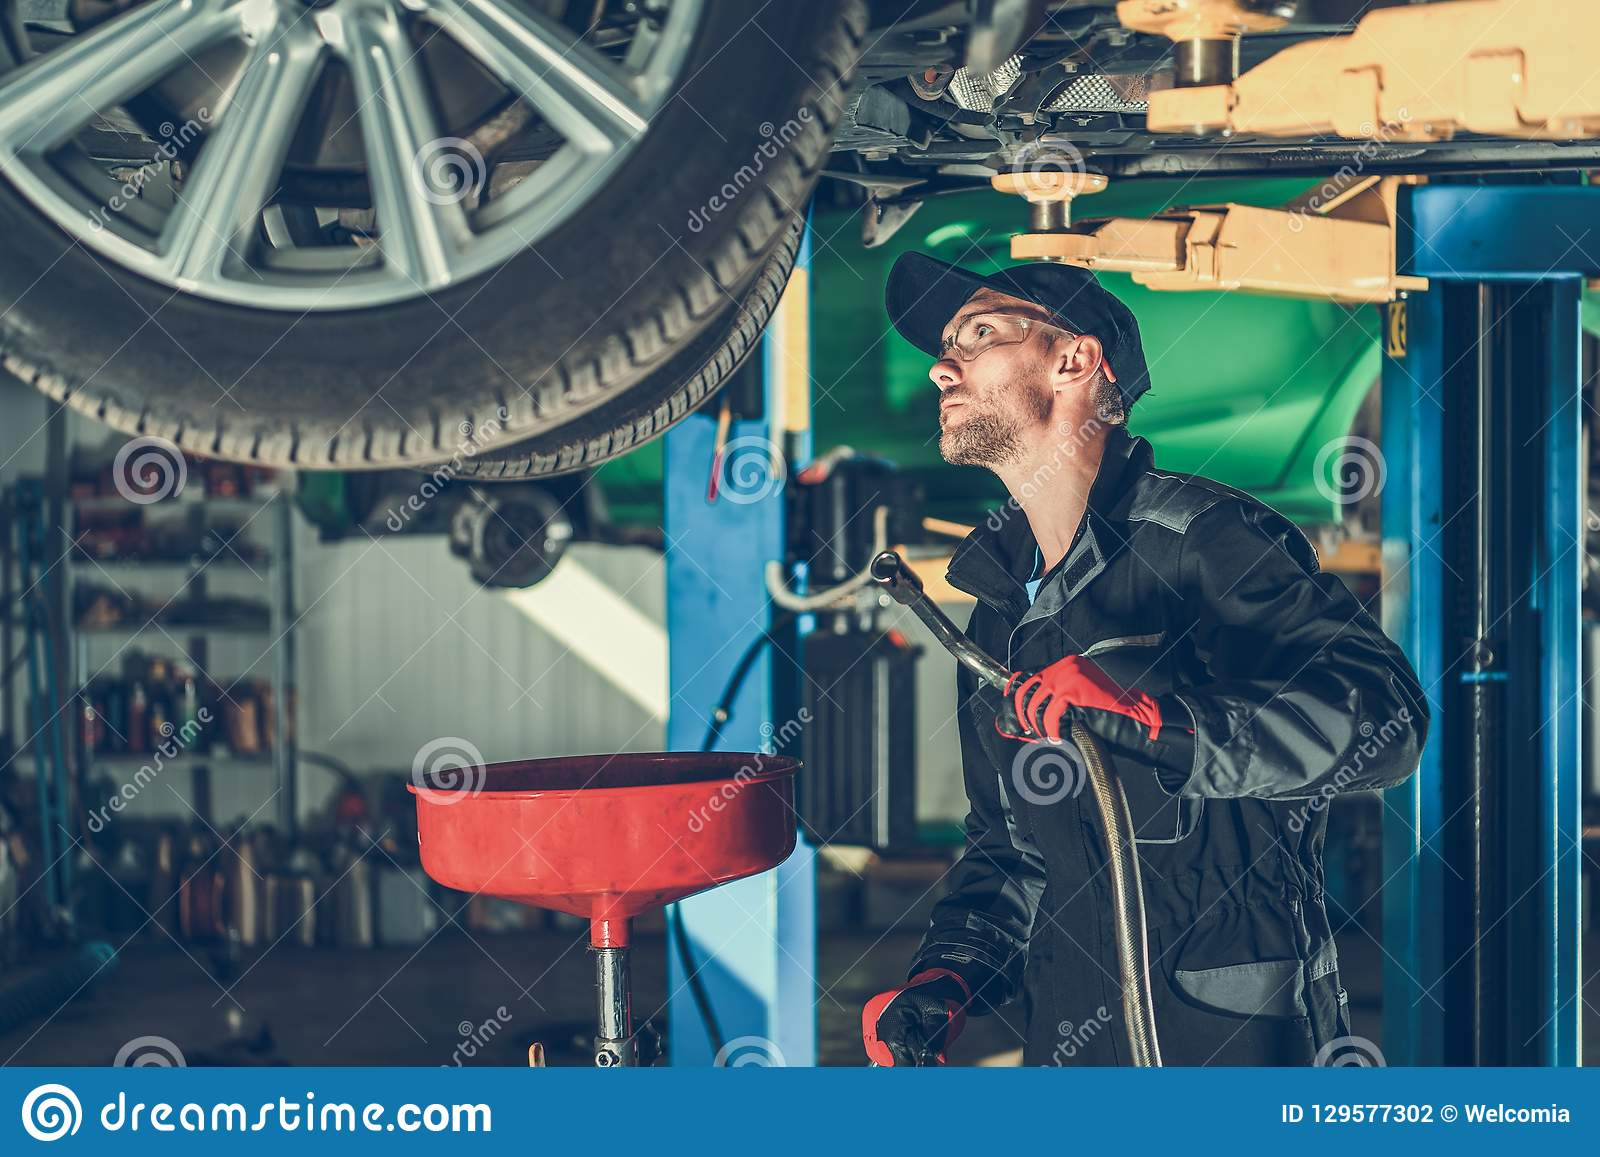 Car Oil Change in the Service